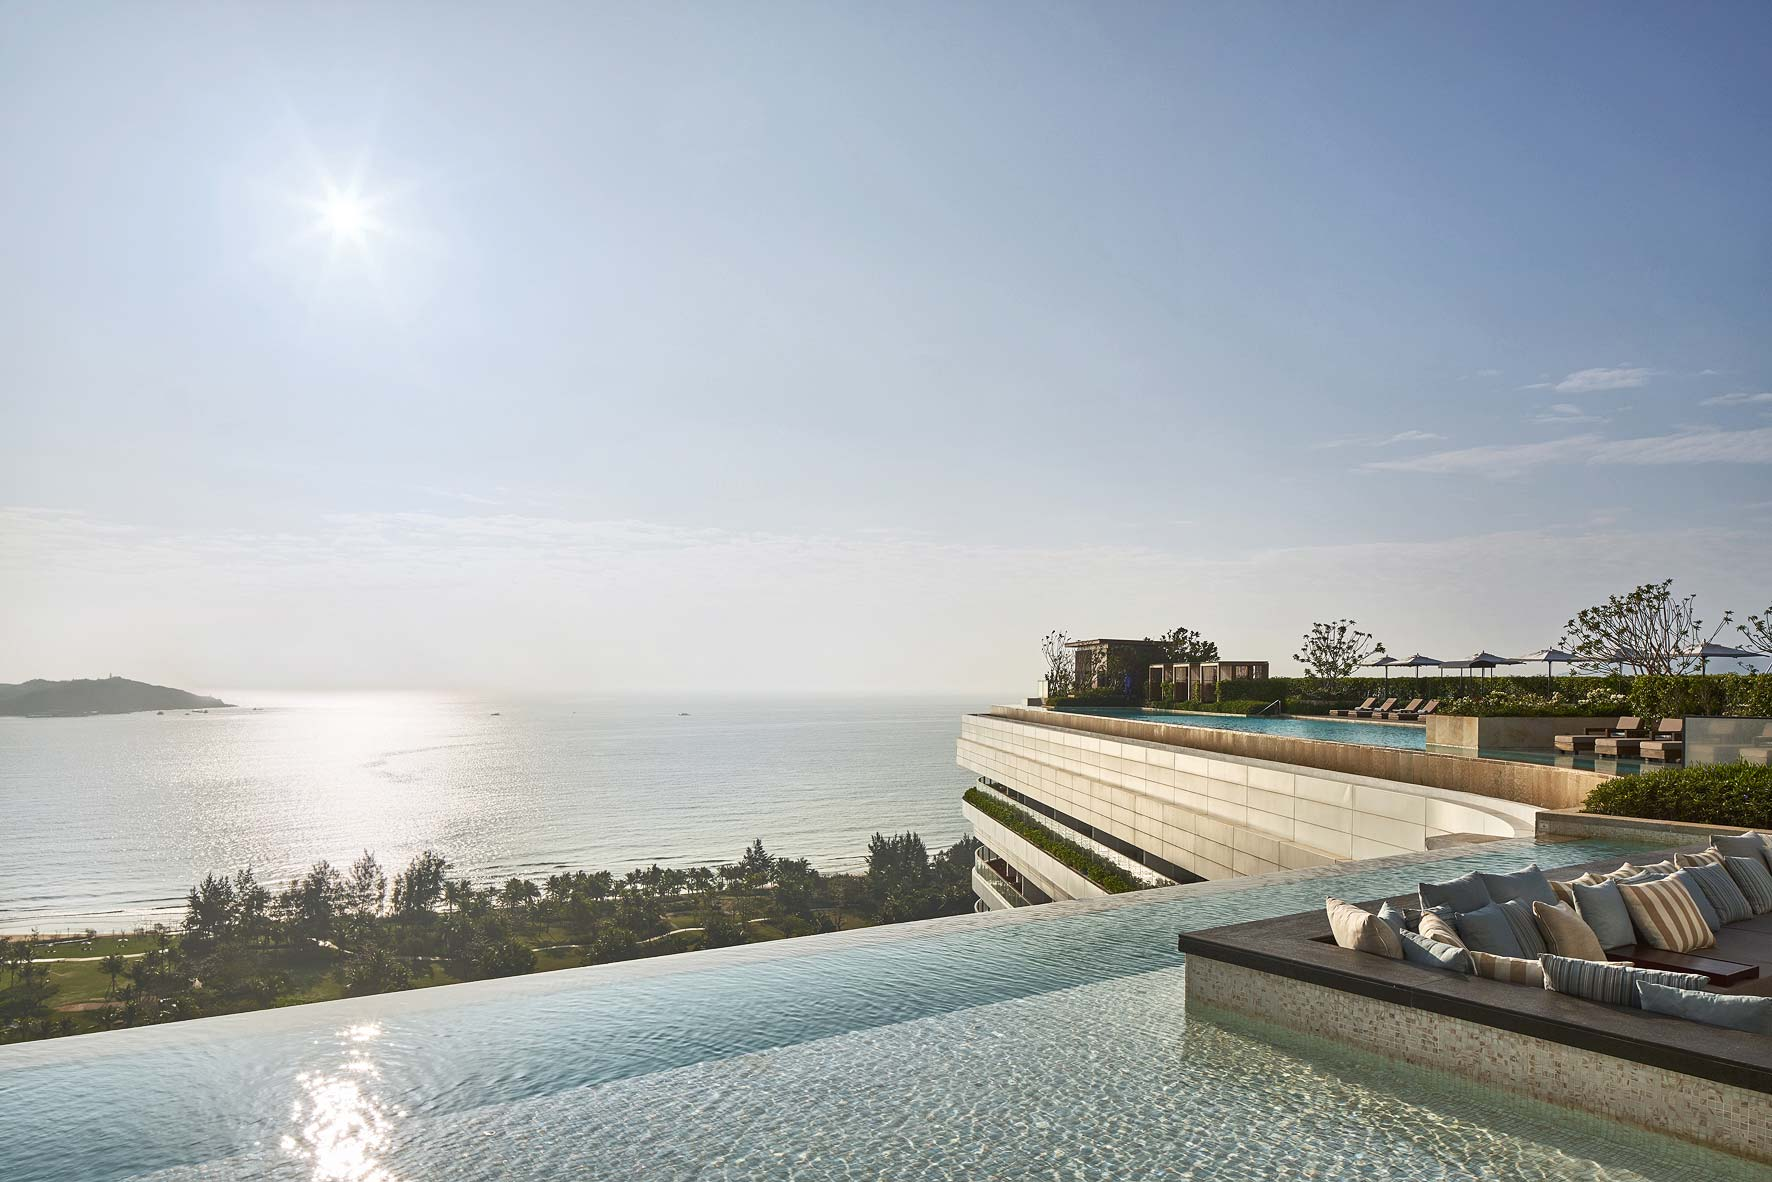 Rosewood Hotel Sanya China. Architectural photographer Asia